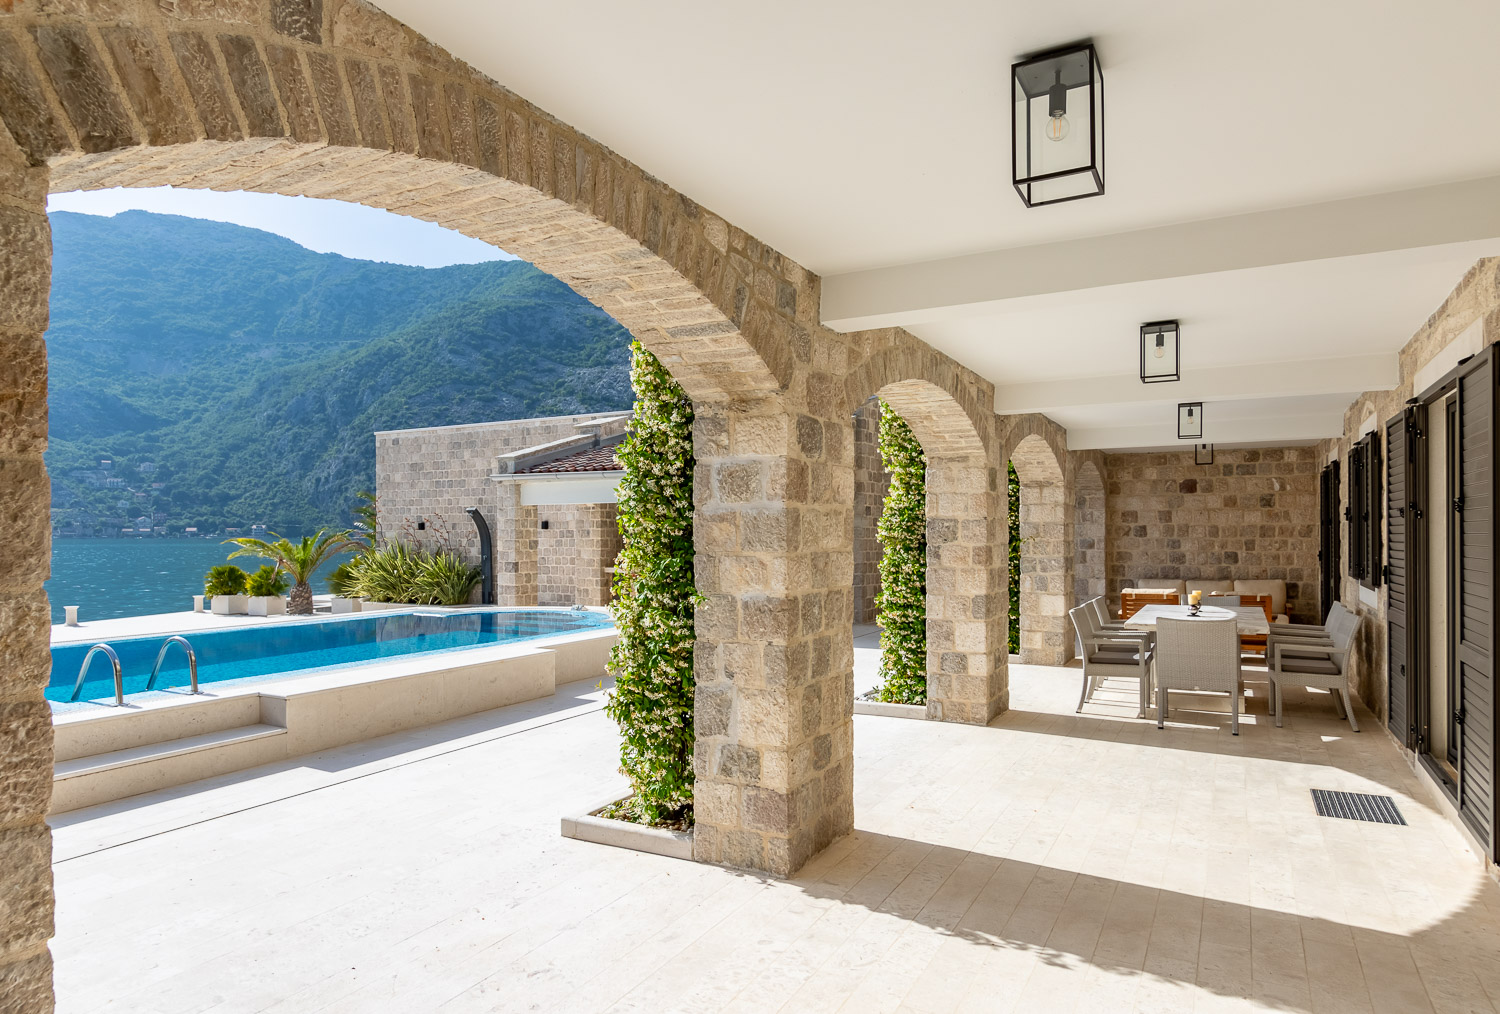 waterfront-villa-with-covered-terrace-risan-Bay-Of-Kotor-Montenegro.JPG